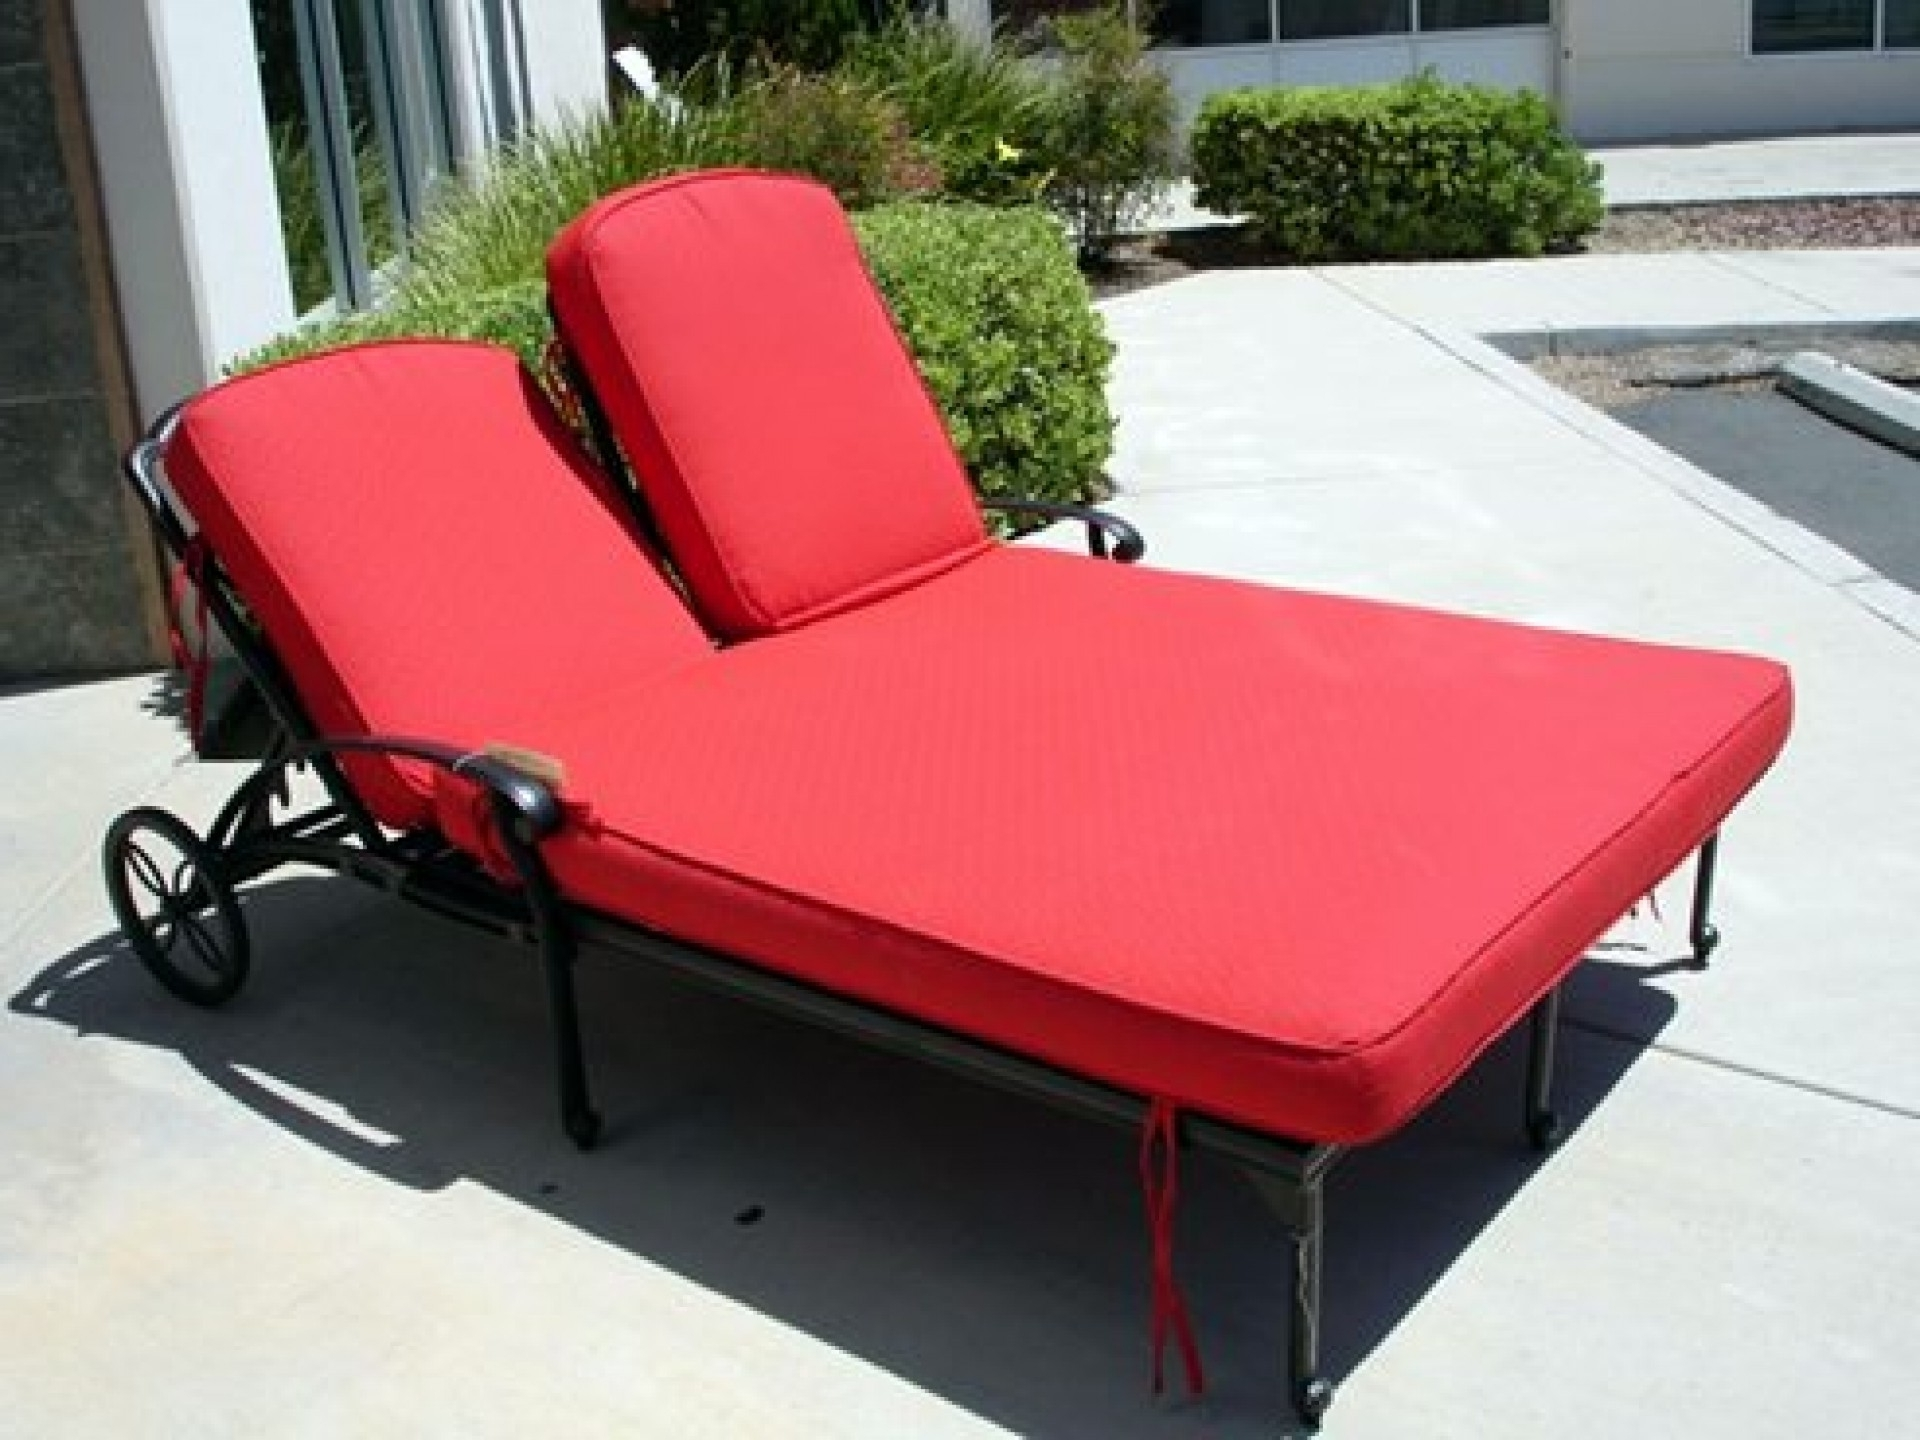 Best And Newest Convertible Chair : Patio Seat Covers Outdoor Patio Bench Cushions Intended For Patio Double Chaise Lounges (View 5 of 15)